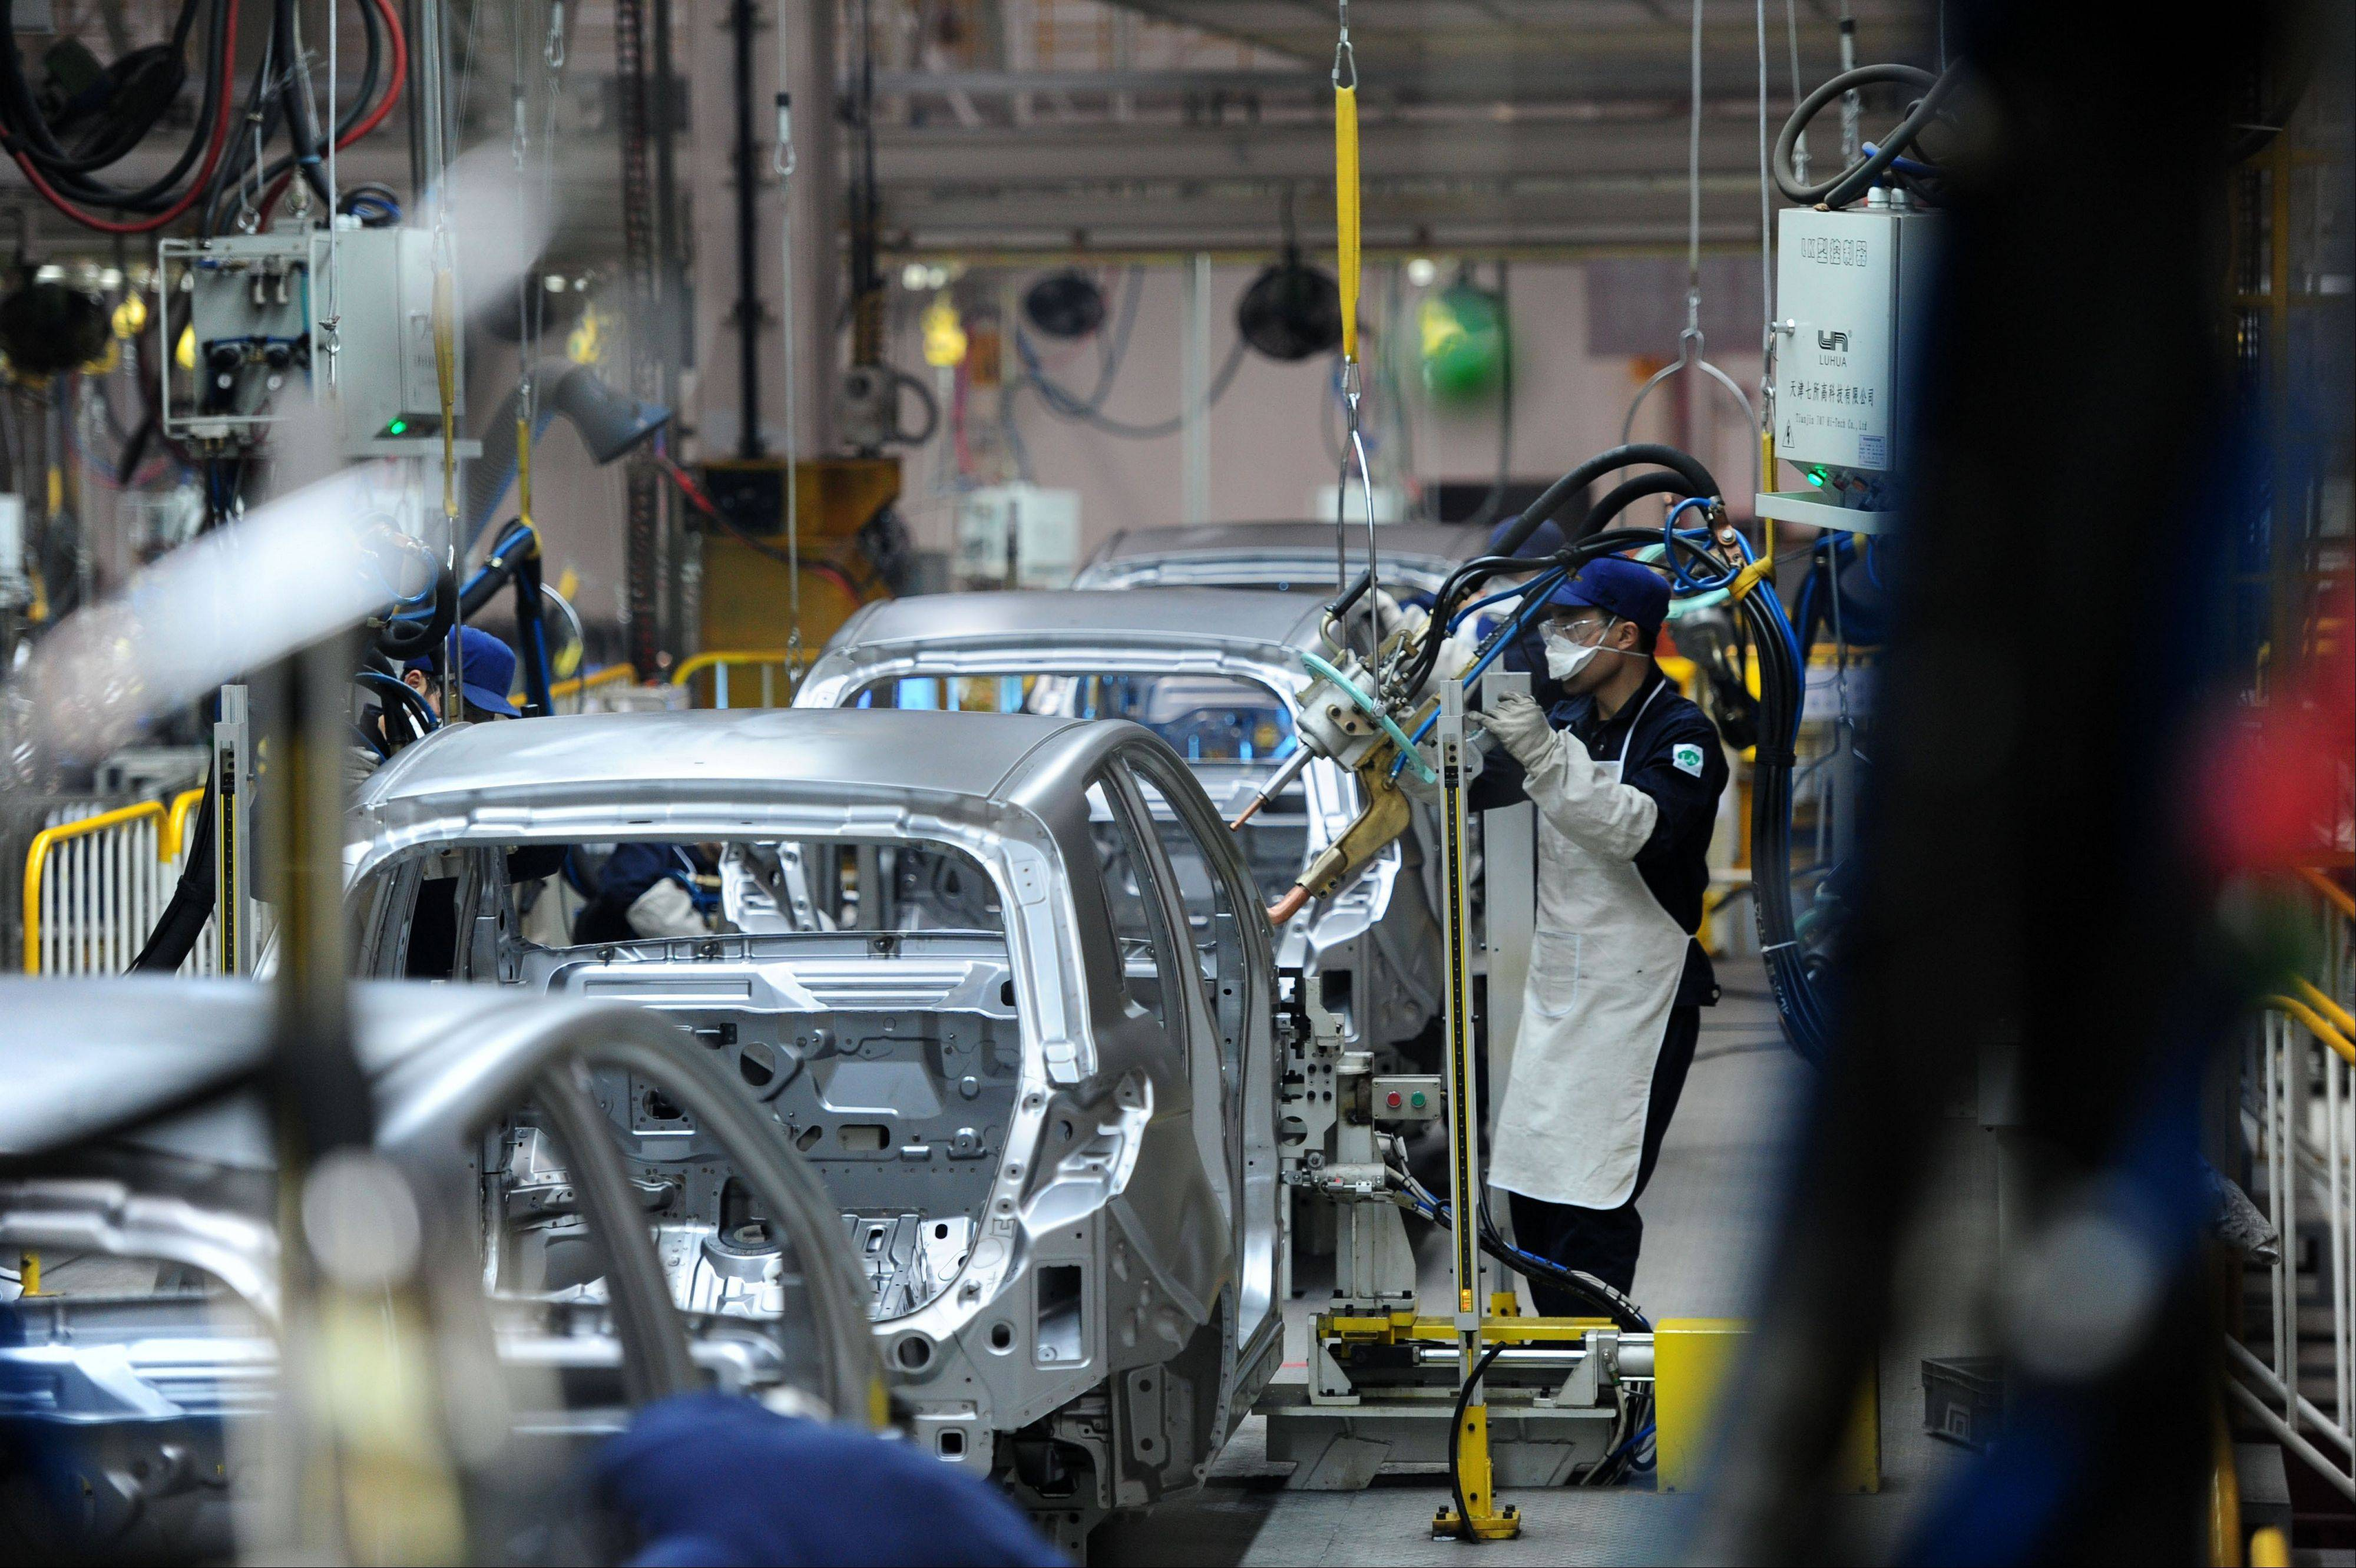 Workers assemble cars at the factory of BAIC Motor Corporation in Zhuzhou in south China�s Hunan province. Plagued by uncertainty and fresh setbacks, the world economy has weakened further and will grow more slowly over the next year, the International Monetary Fund says in its latest forecast.